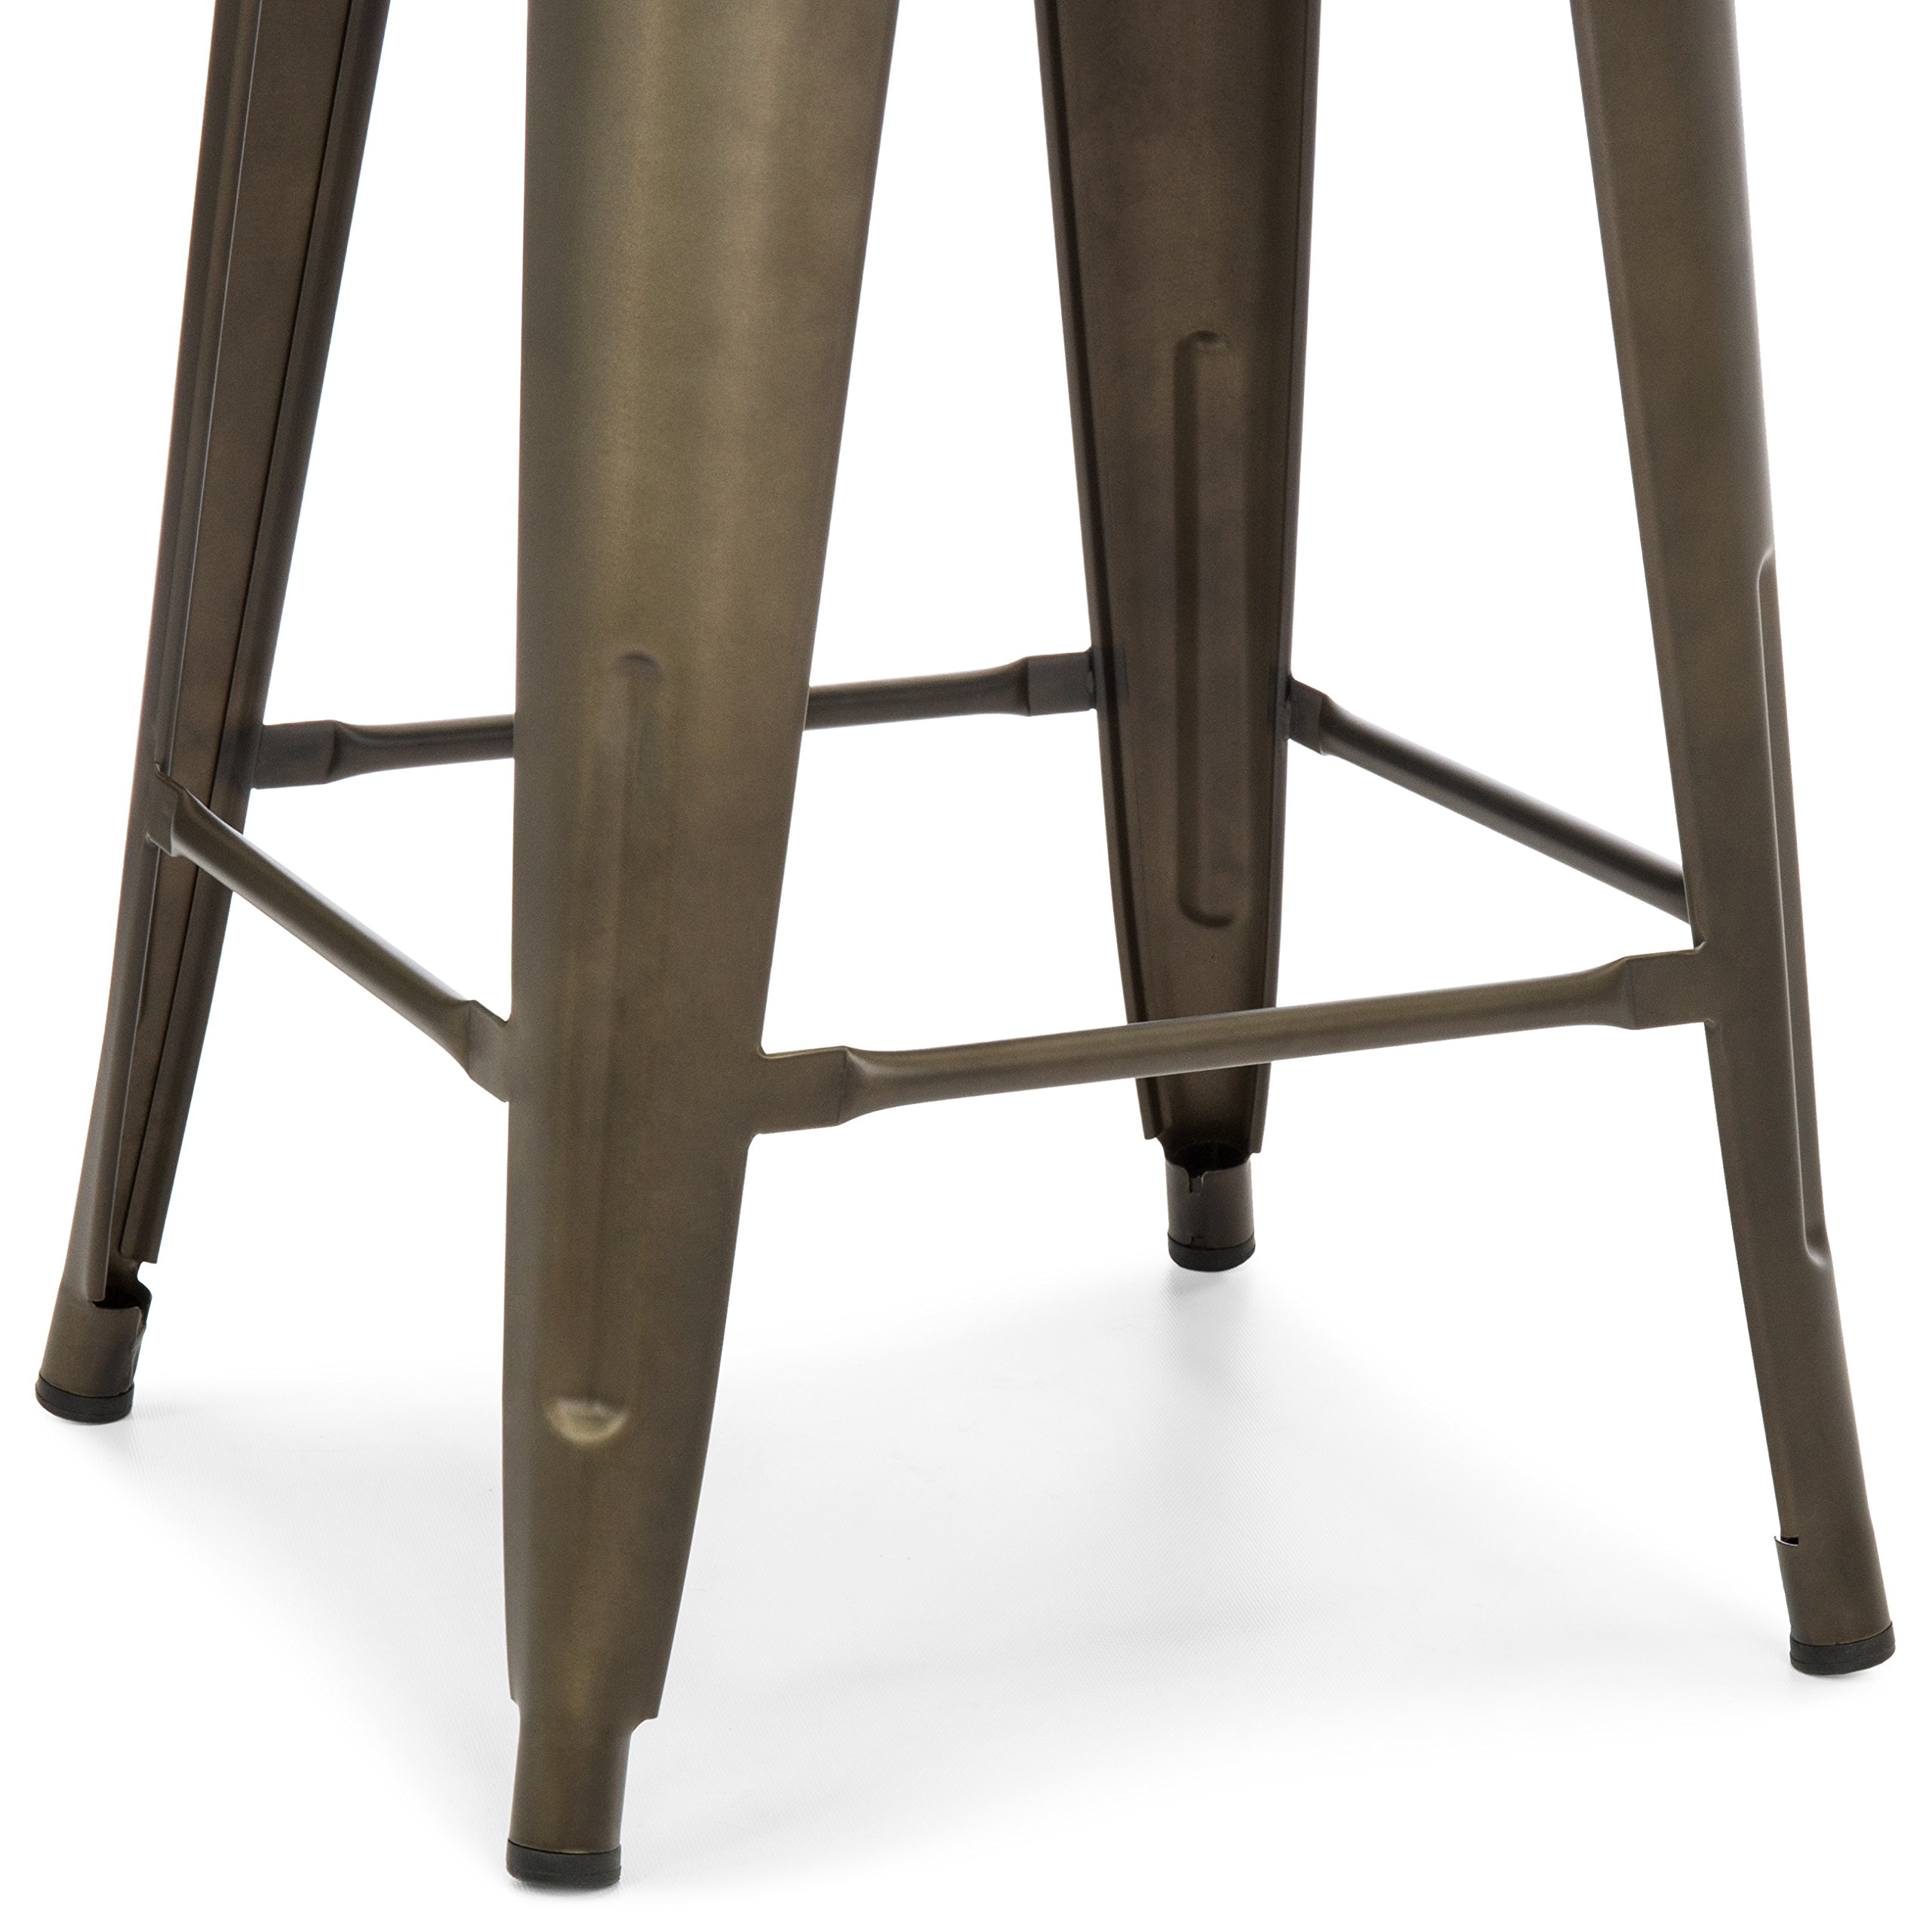 Best Choice Products 24in Set of 4 Stackable Industrial Distressed Metal Counter Height Bar Stools w/Wood Seat - Copper by Best Choice Products (Image #4)